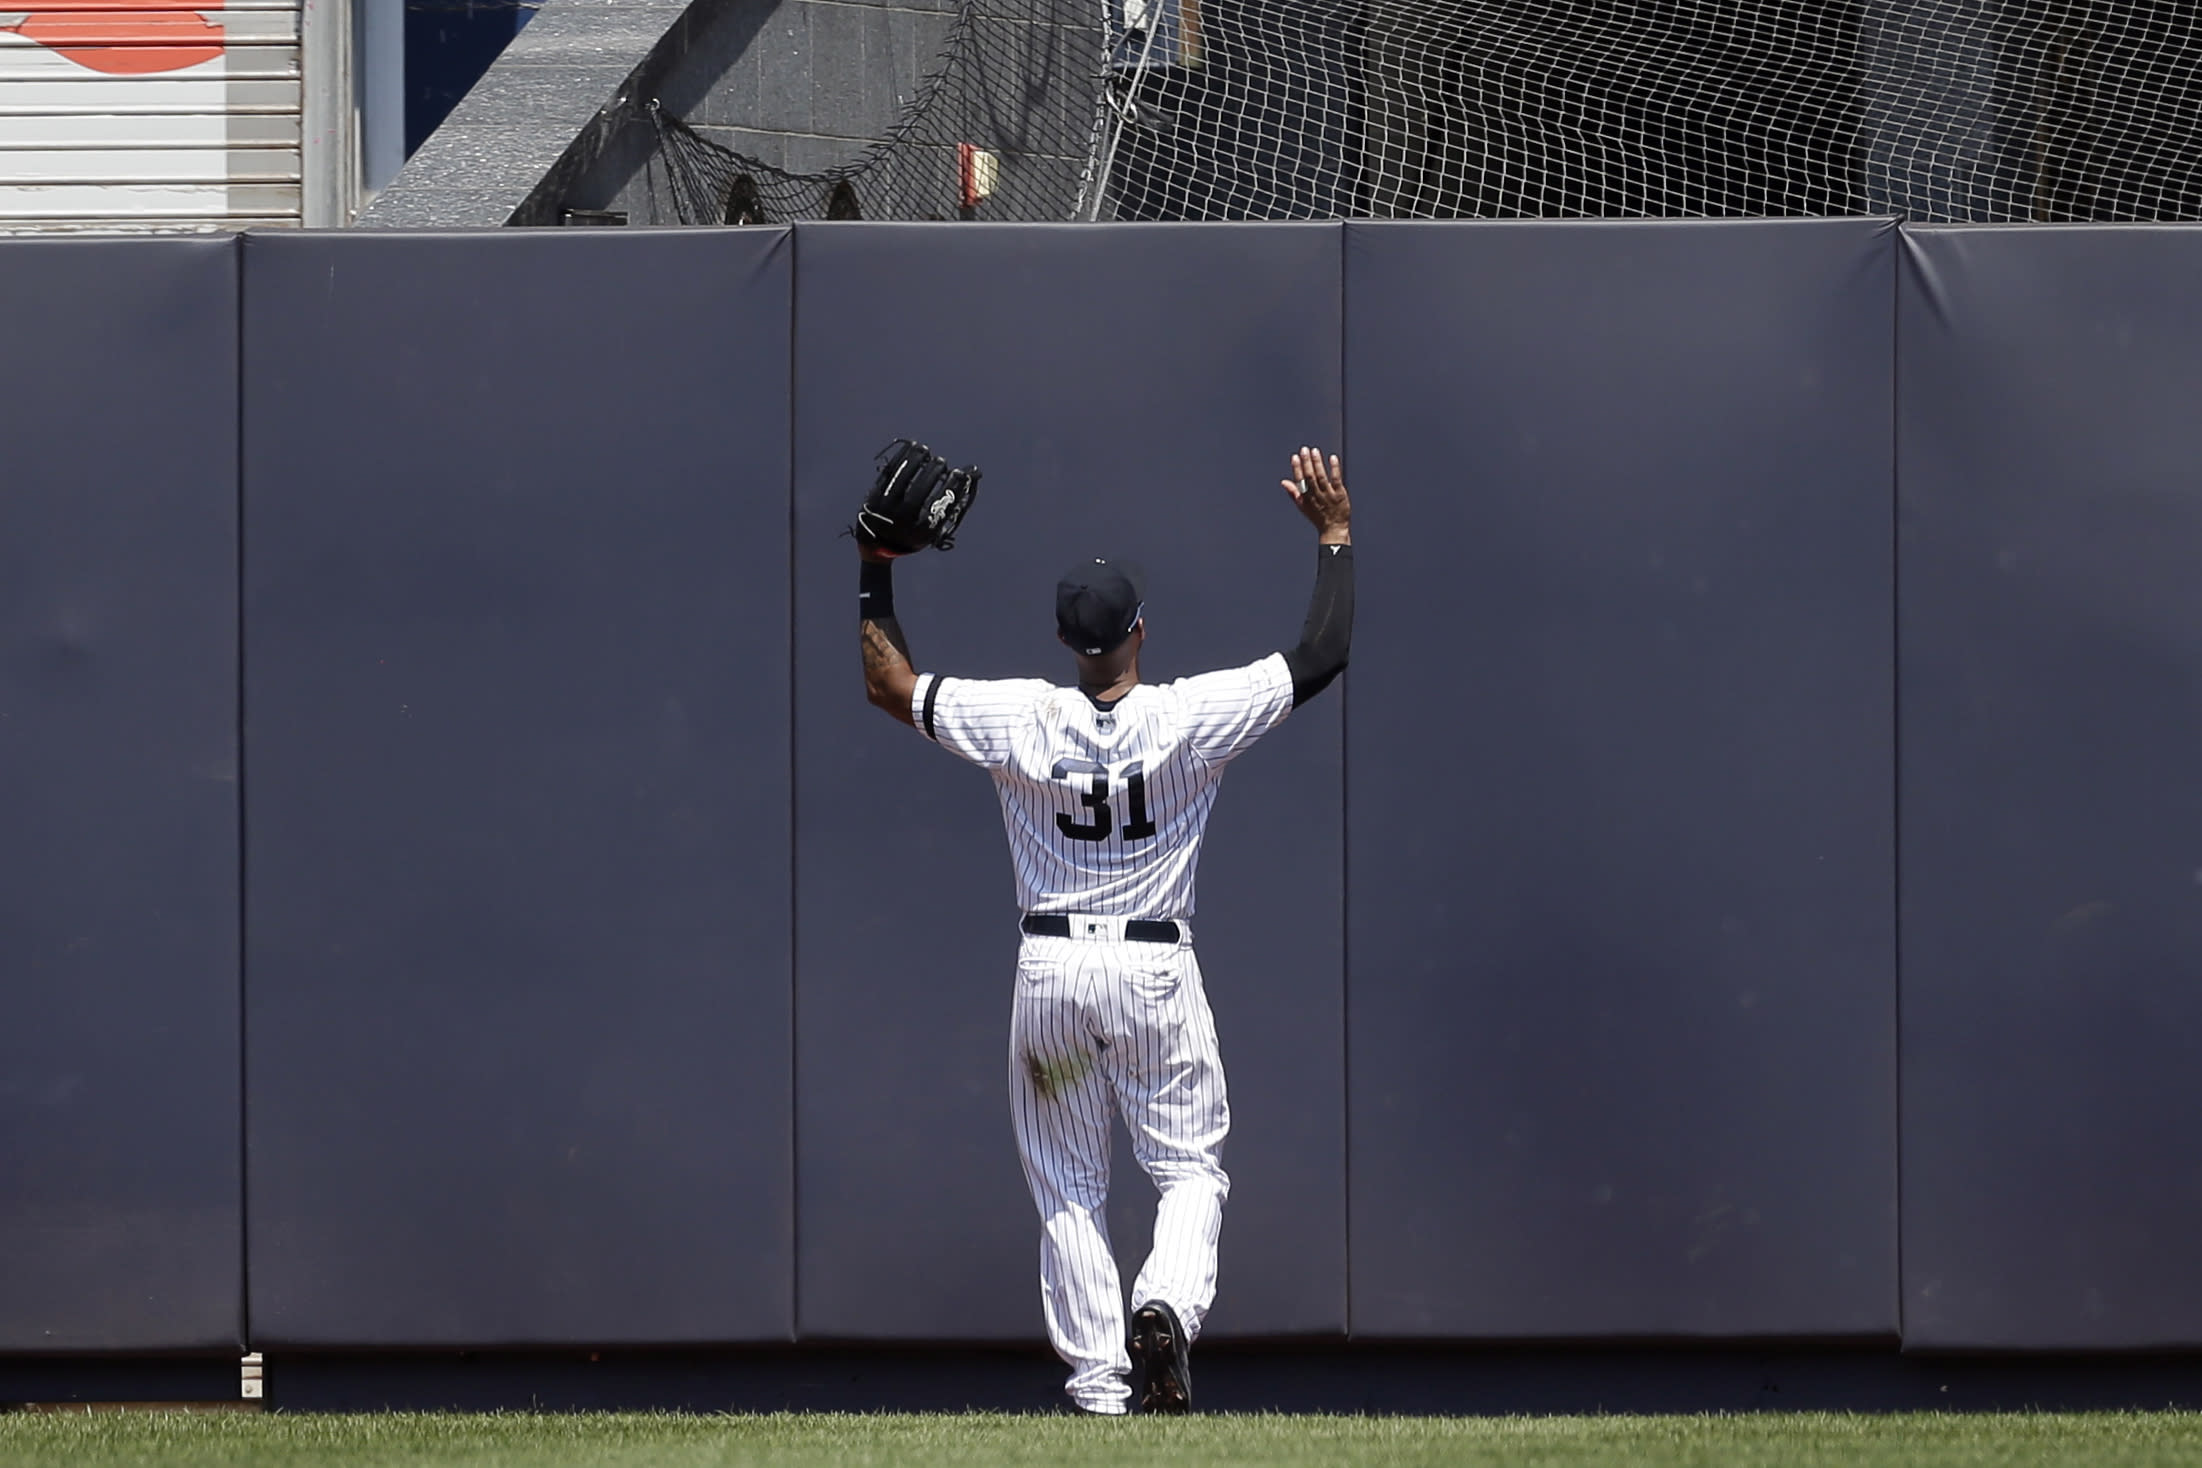 New York Yankees center fielder Aaron Hicks reacts as Colorado Rockies' Trevor Story hits a two-run double during the fourth inning of a baseball game at Yankee Stadium, Sunday, July 21, 2019, in New York. (AP Photo/Seth Wenig)